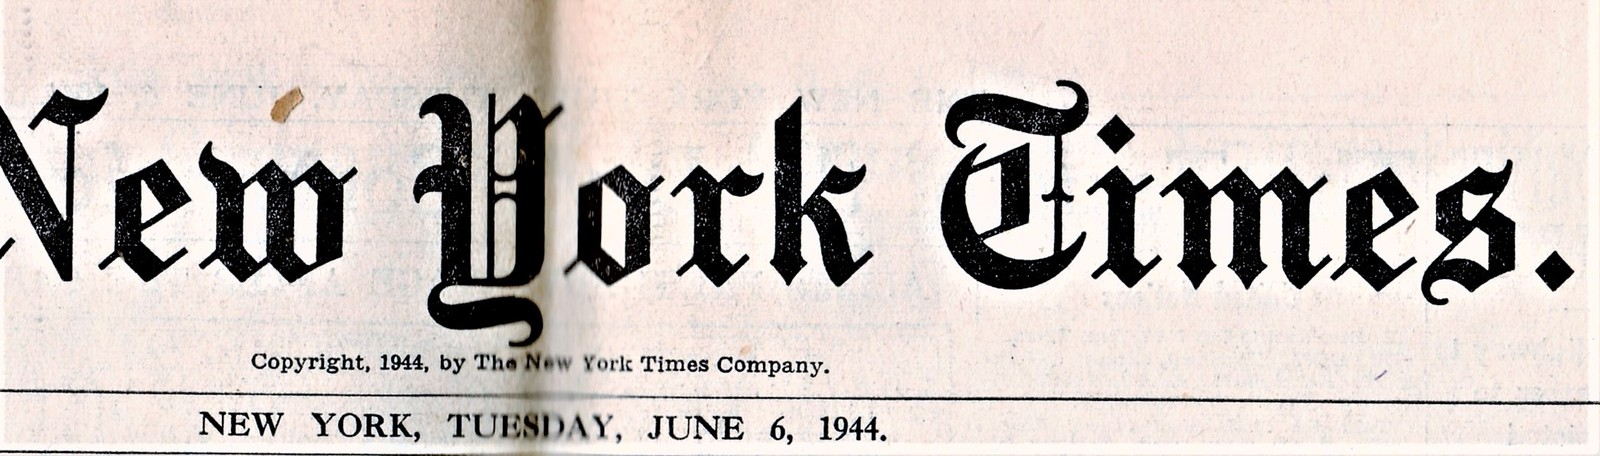 Primary image for The New York Times, Newspaper, Tuesday June 6, 1944